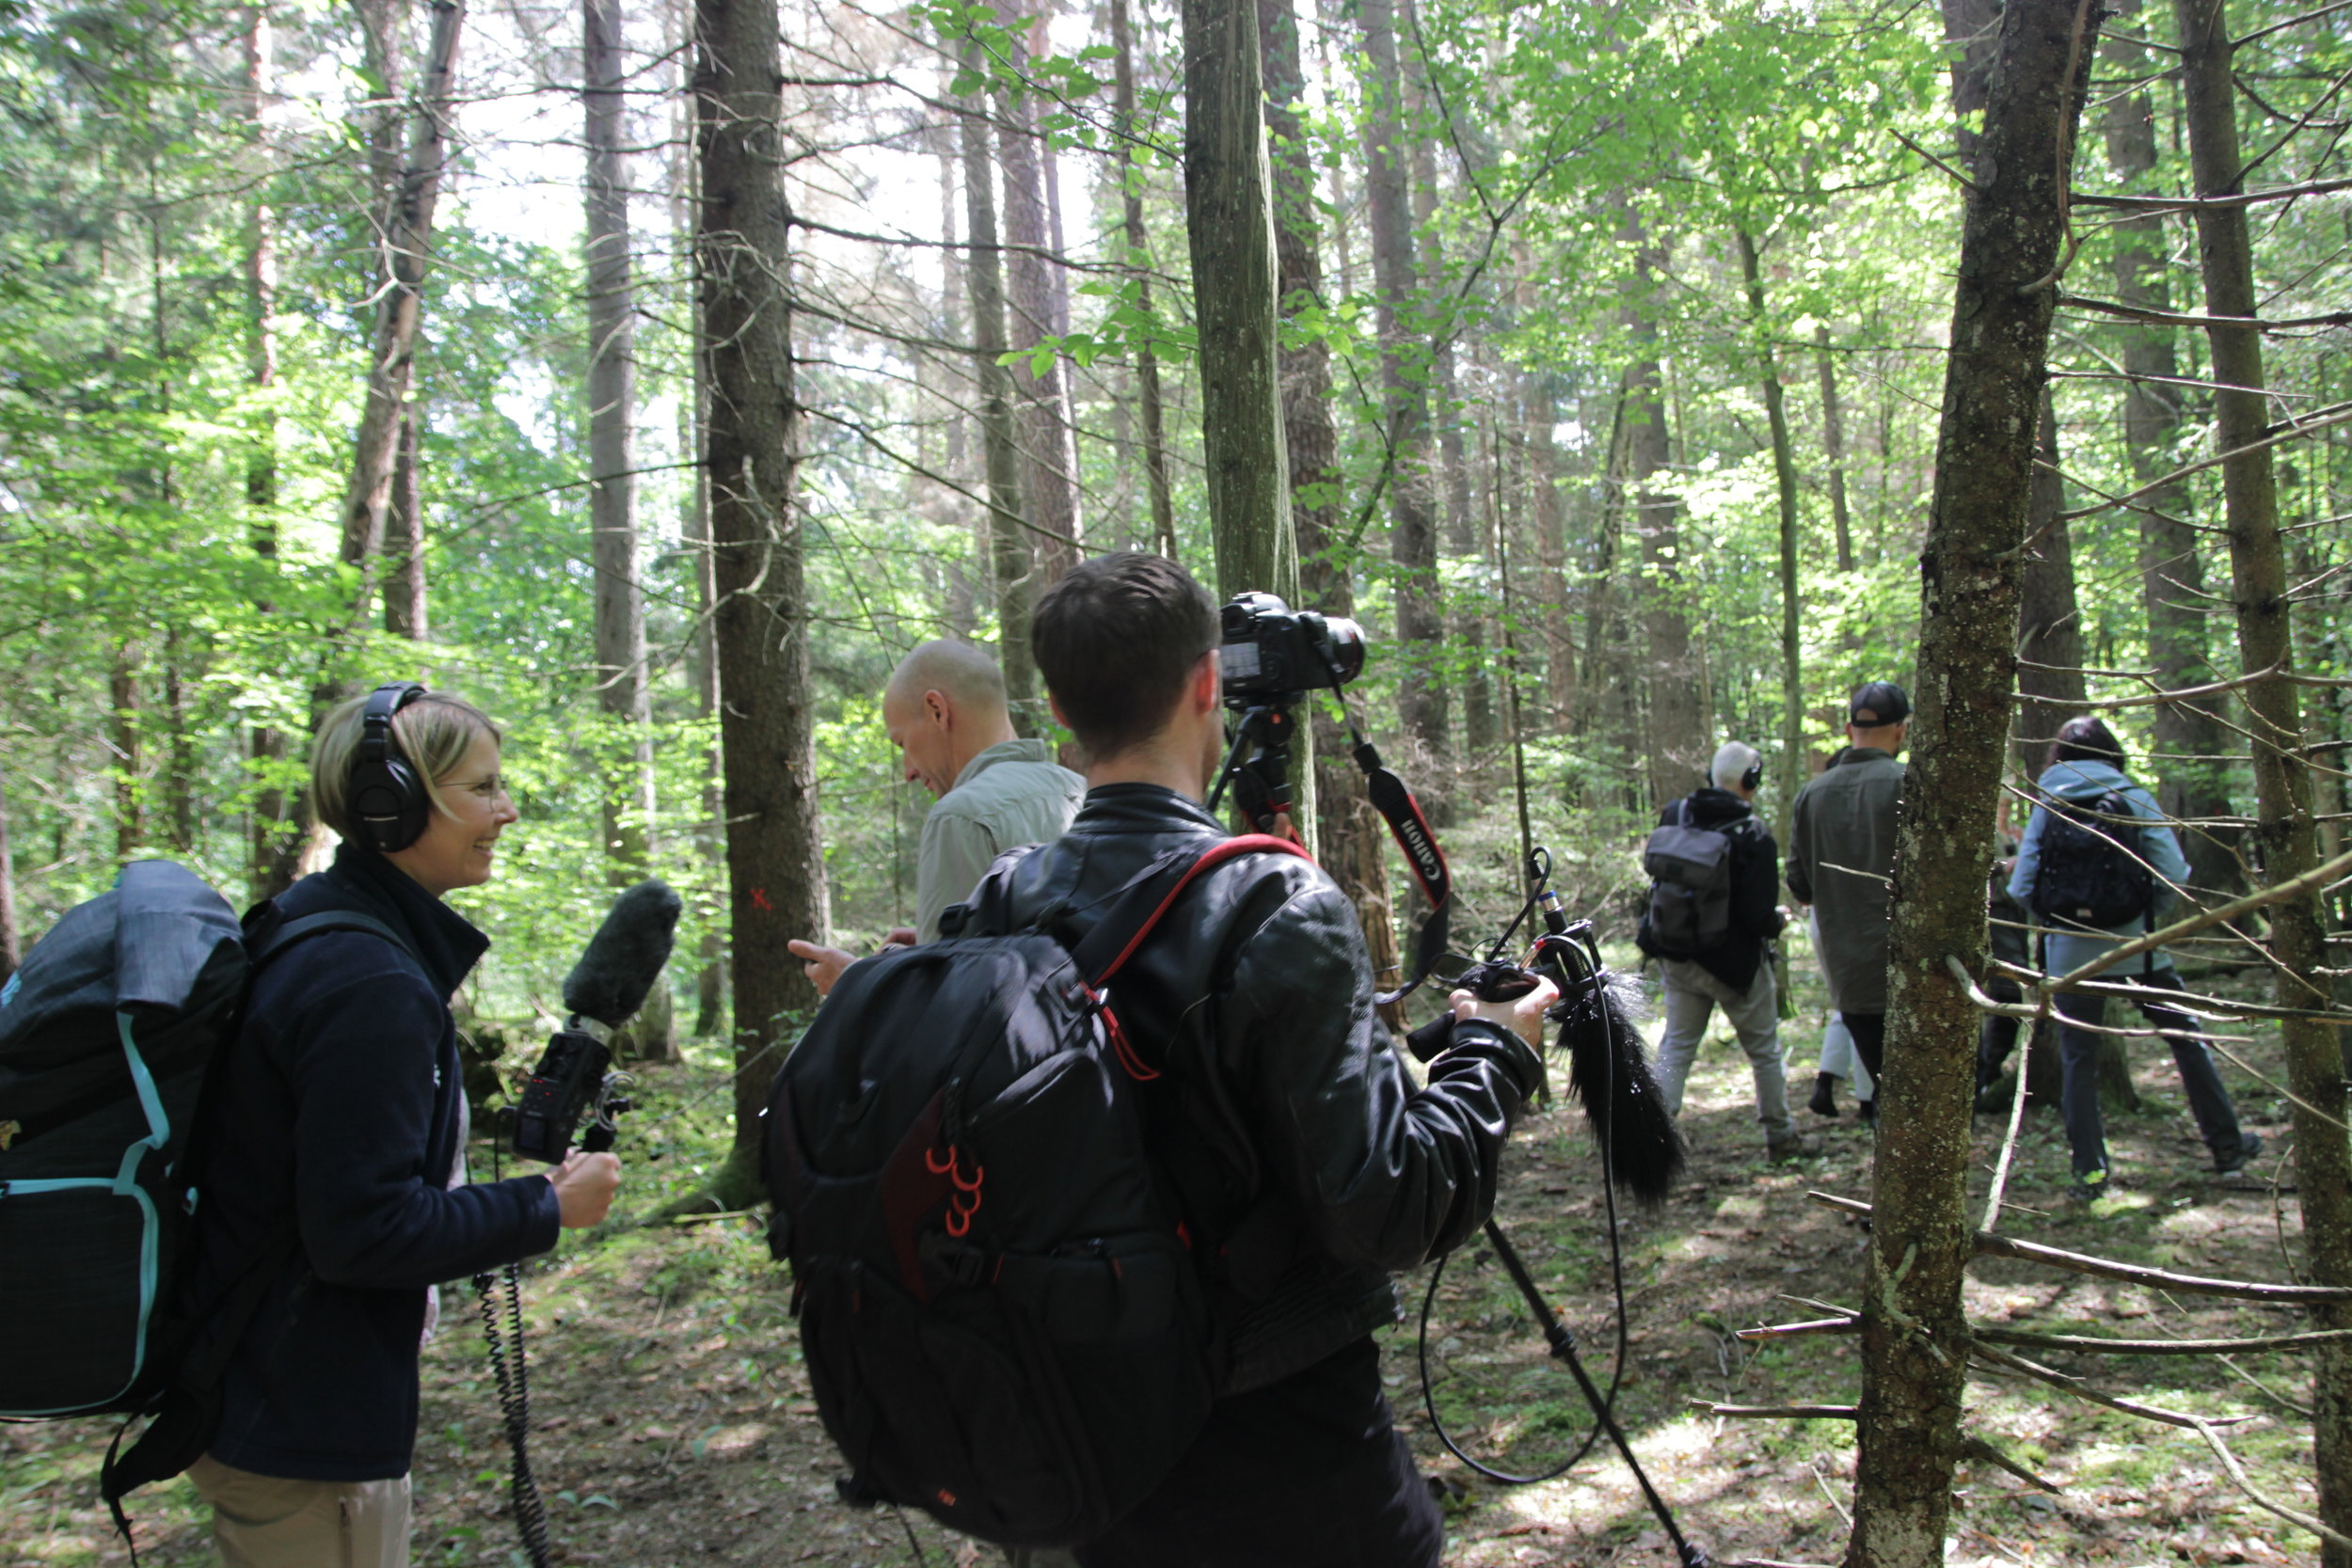 sound-reporting-co-lab-in-bialowieza-poland_48323617247_o copy.jpg